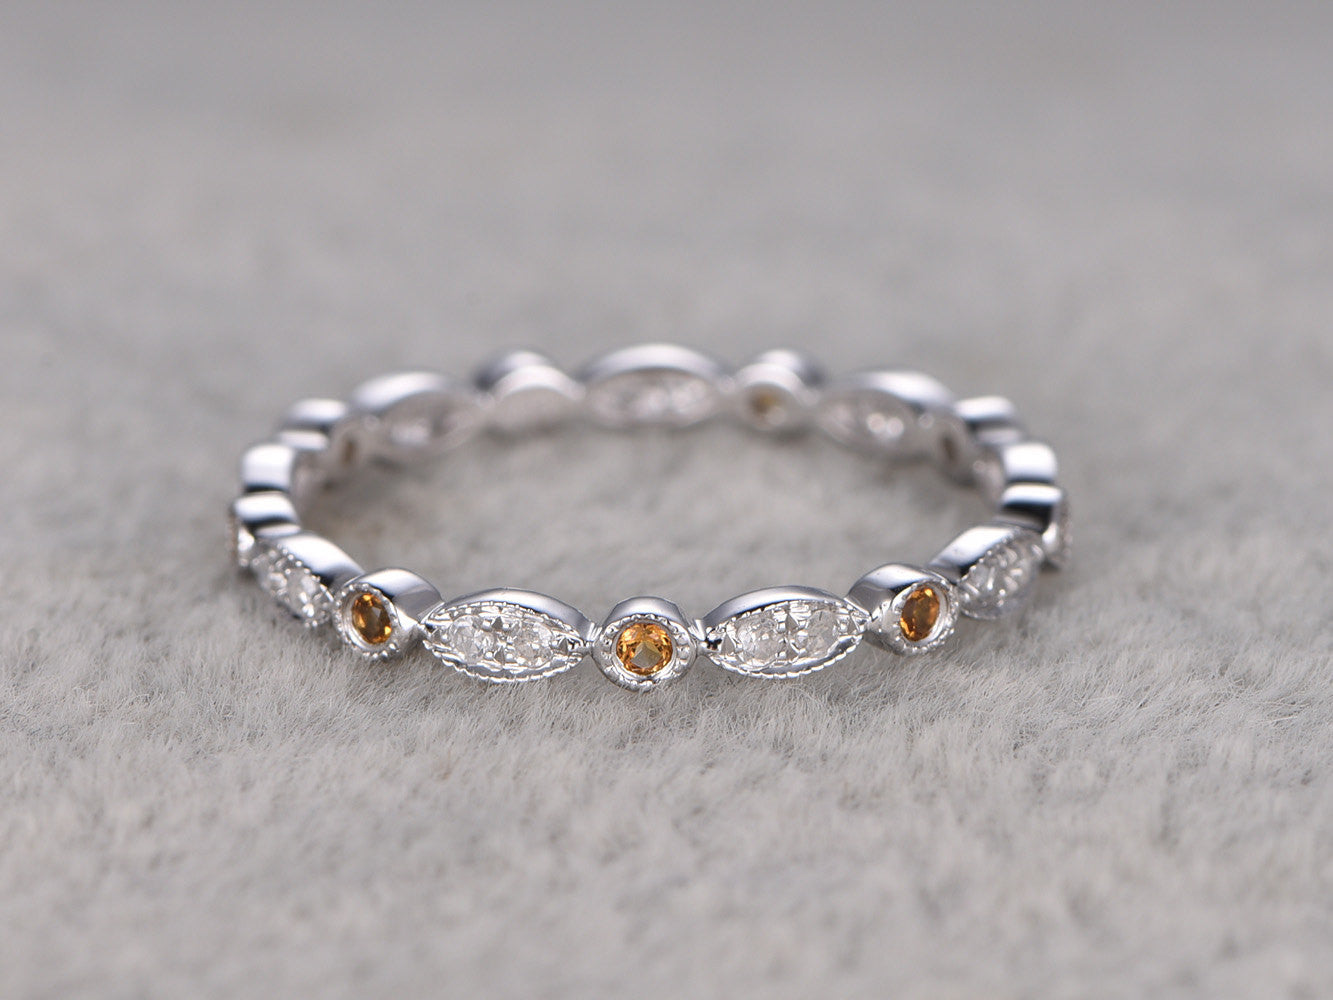 Natural Citrine and Diamond,Full Eternity Wedding Ring,Solid 14K White gold,Anniversary Ring,Art deco,stacking,milgrain,Retro vintage Unique